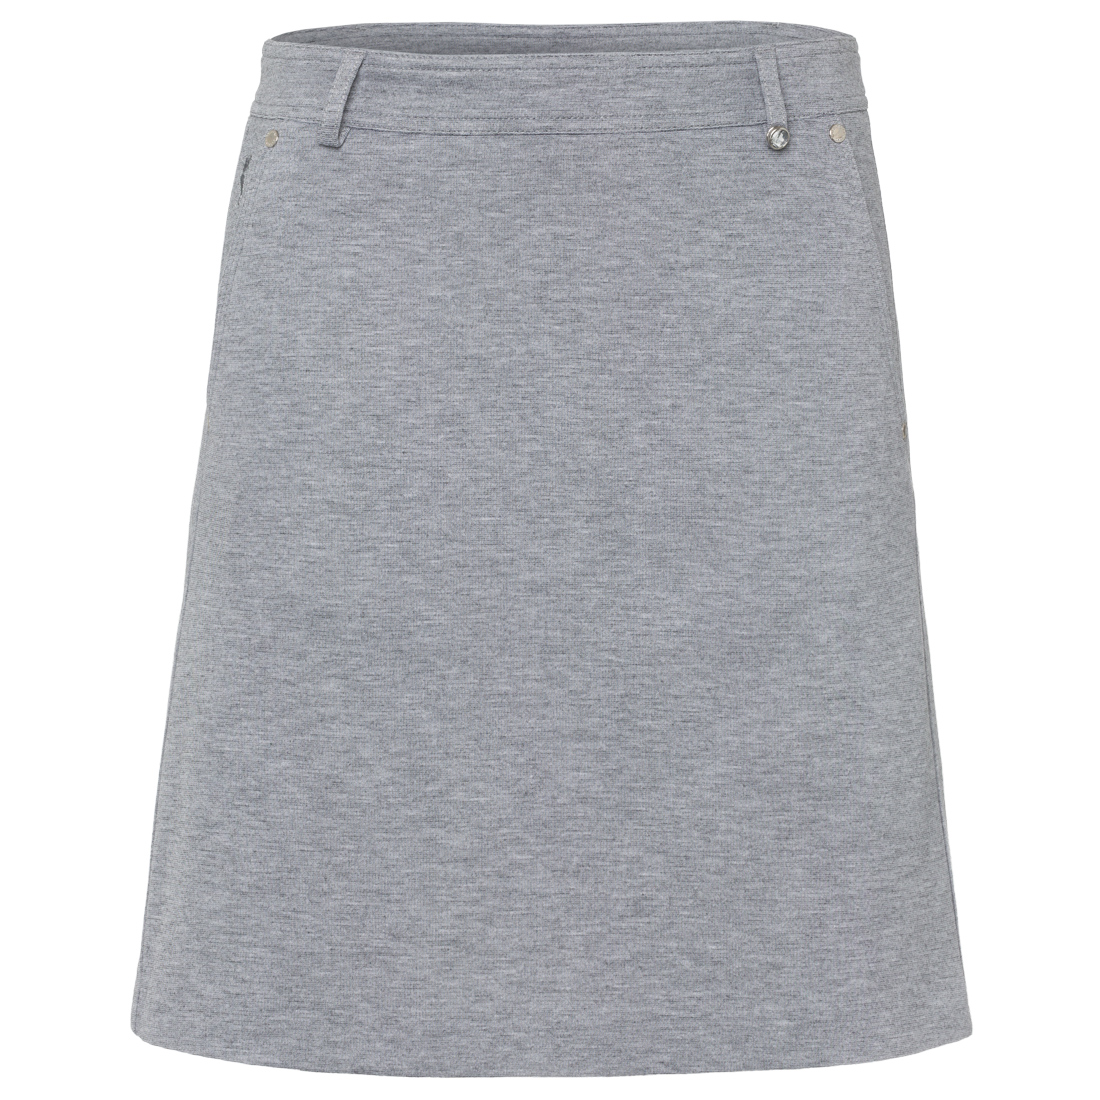 Long stretch golf skort in melange functional material with incorporated shorts